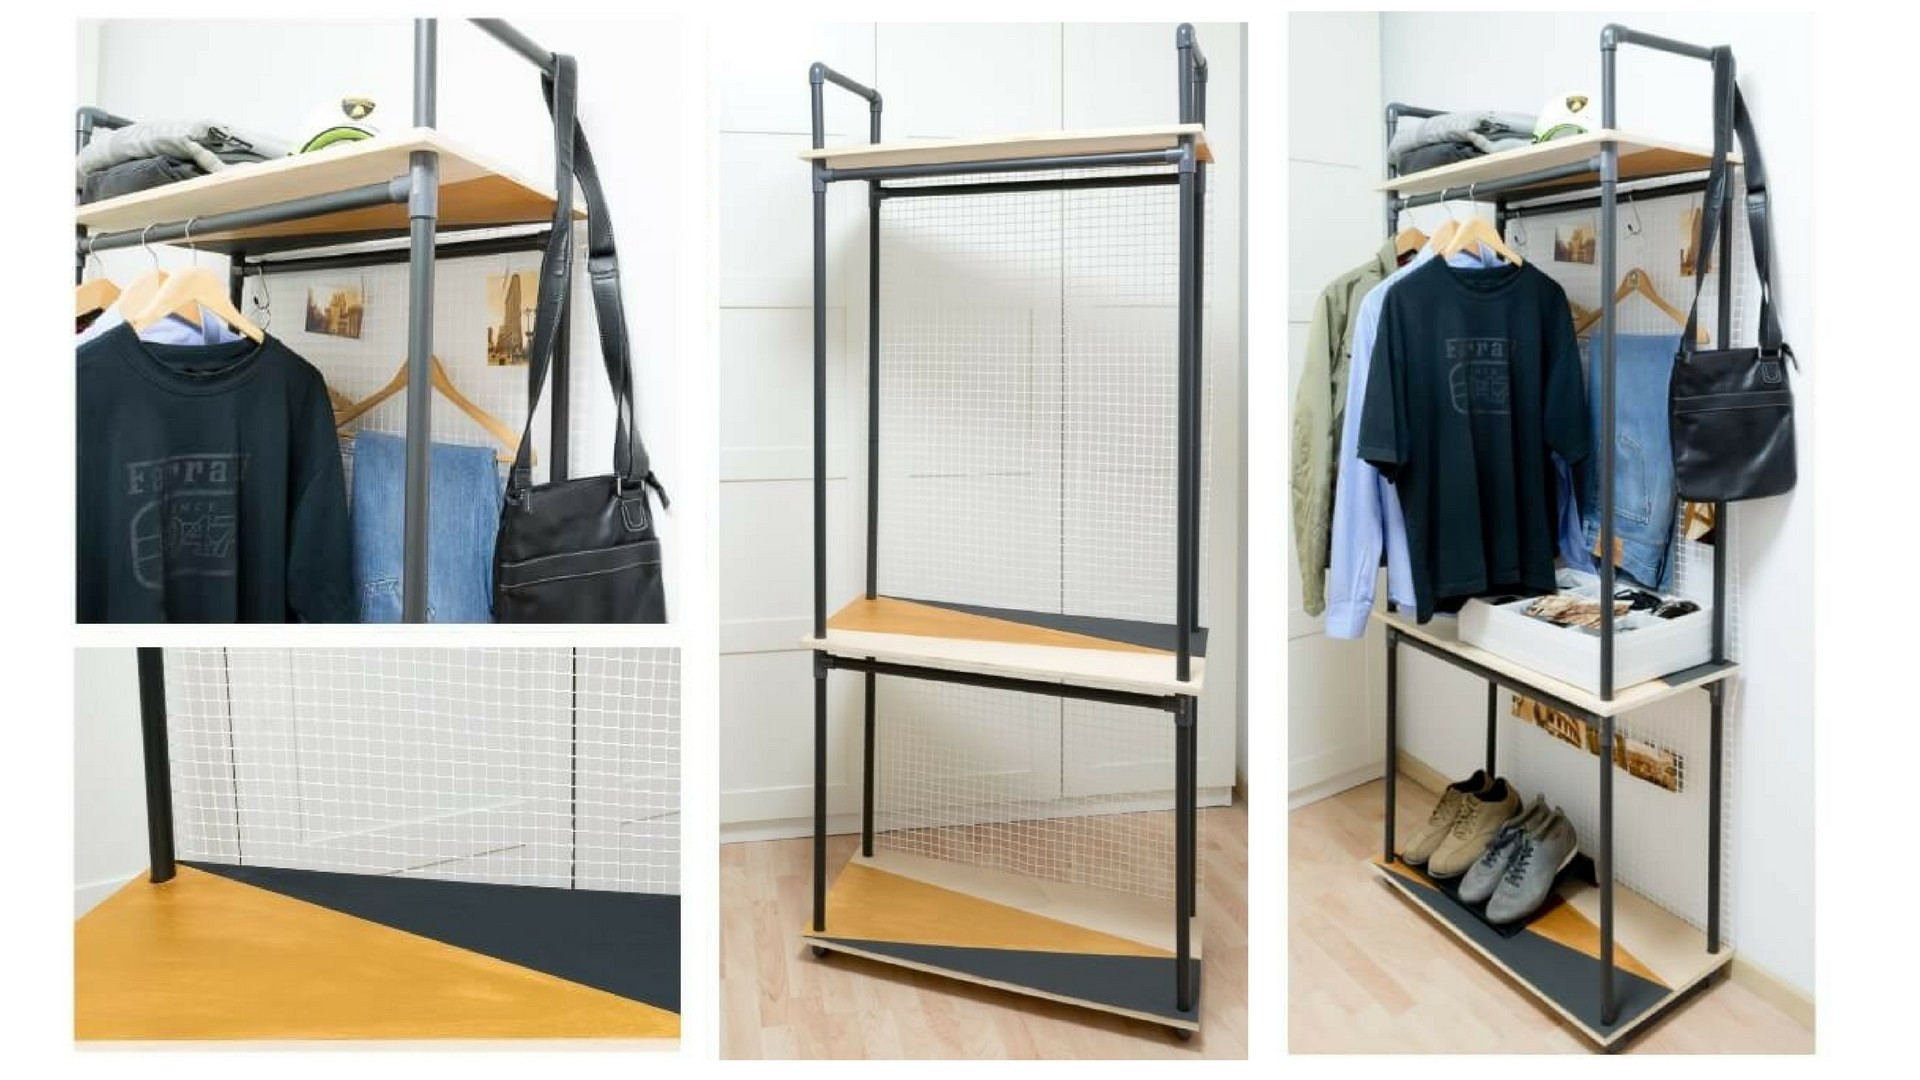 Best ideas about DIY Pvc Clothes Rack . Save or Pin DIY PVC Pipe Clothes Rack The Handy Mano Now.